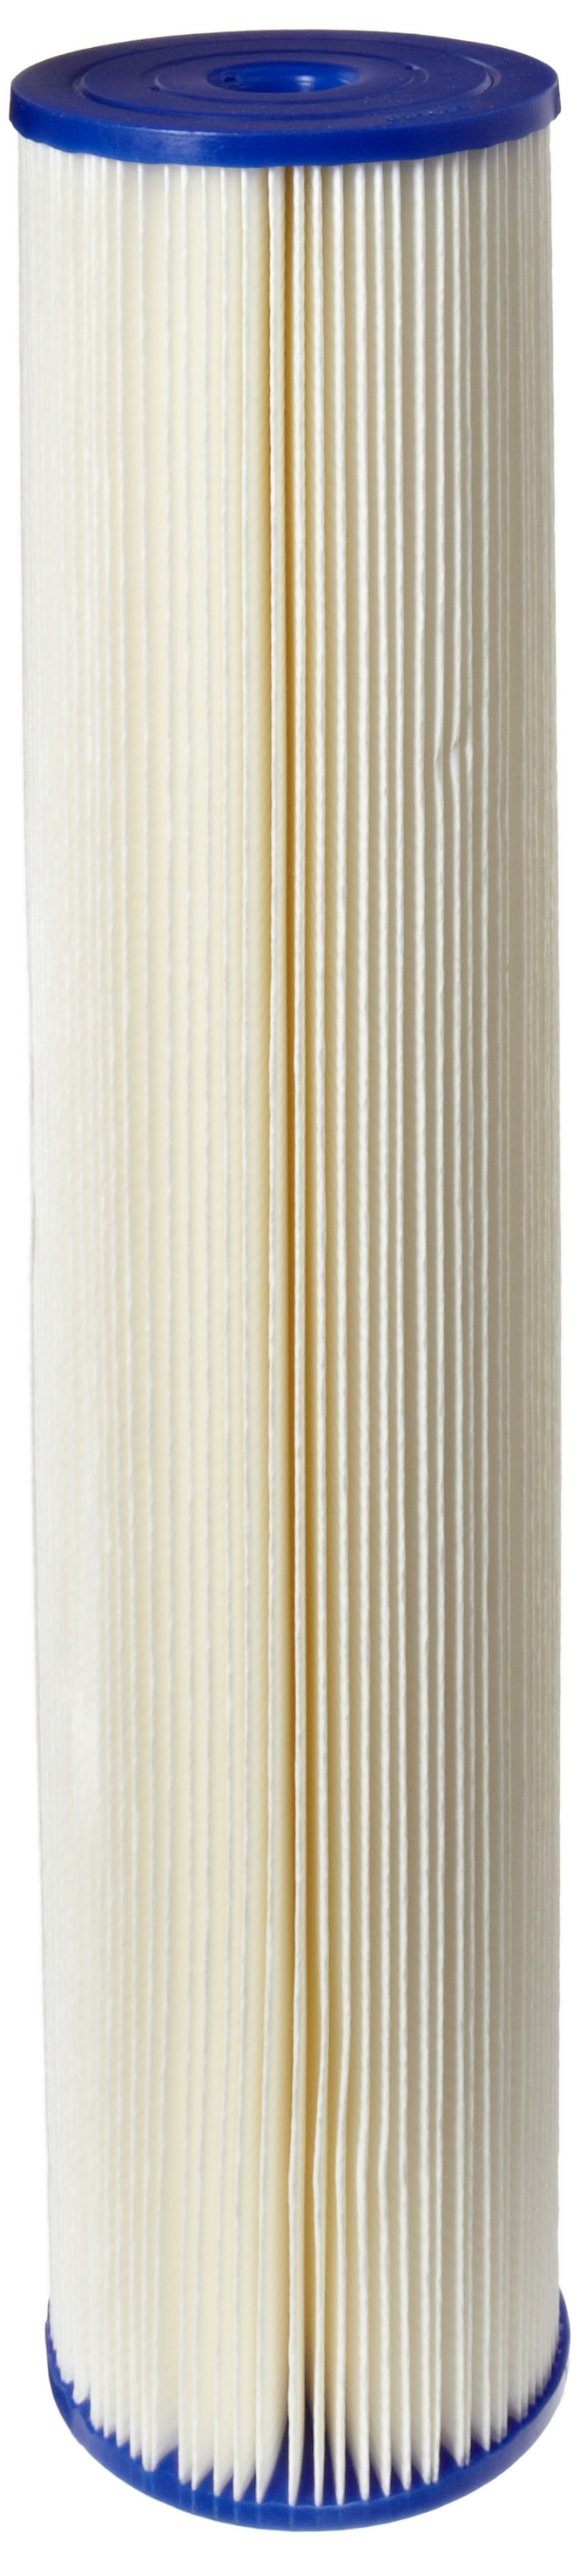 Pentek ECP20-20BB Pleated Cellulose Polyester Filter Cartridge, 20'' x 4-1/2'', 20 Microns by Pentek